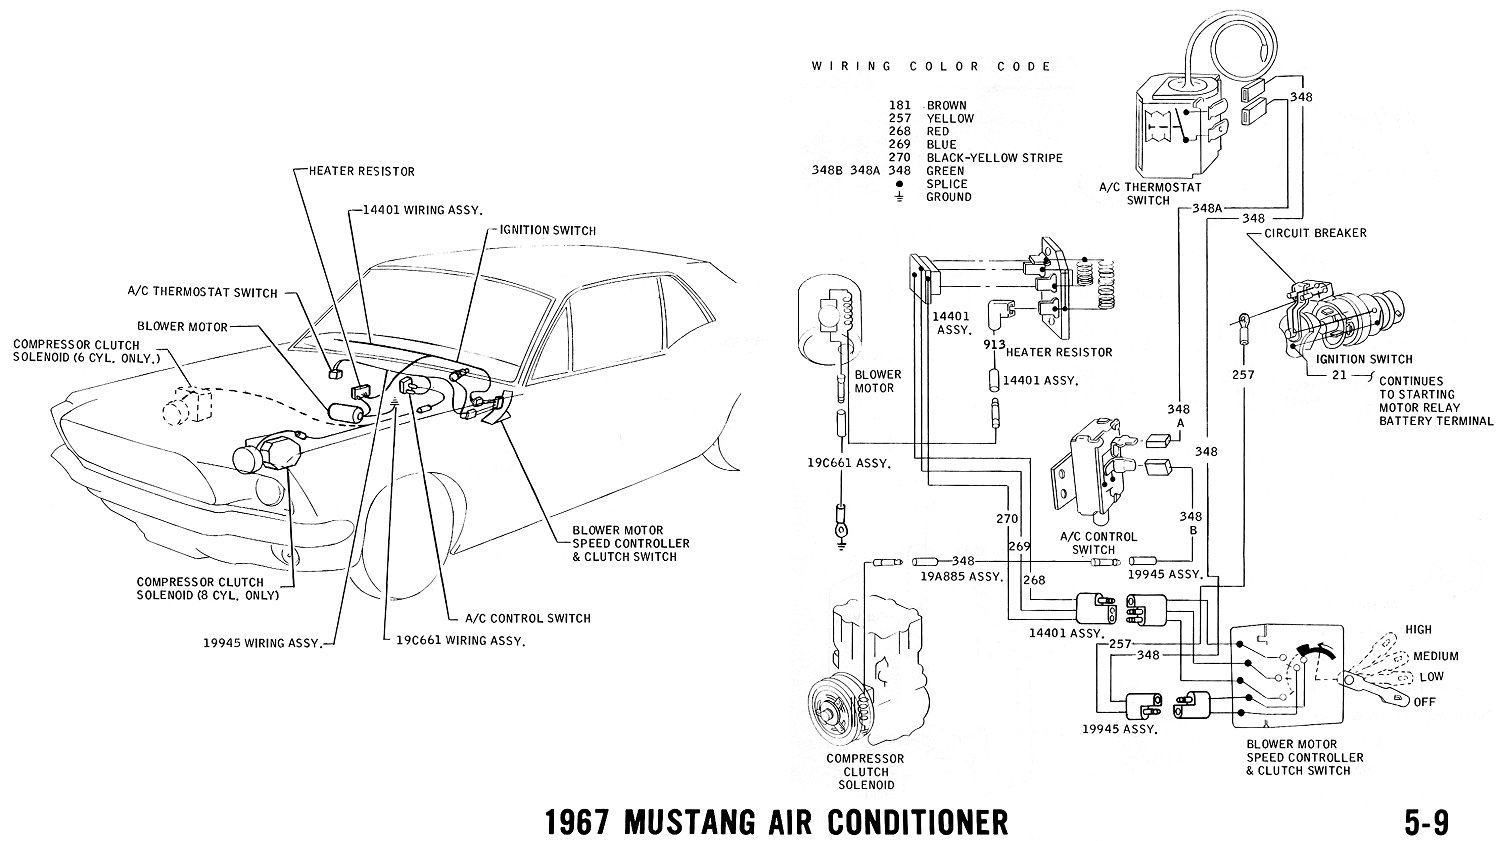 1967 Mustang Wiring And Vacuum Diagrams - Average Joe Restoration - Western Plow Wiring Diagram